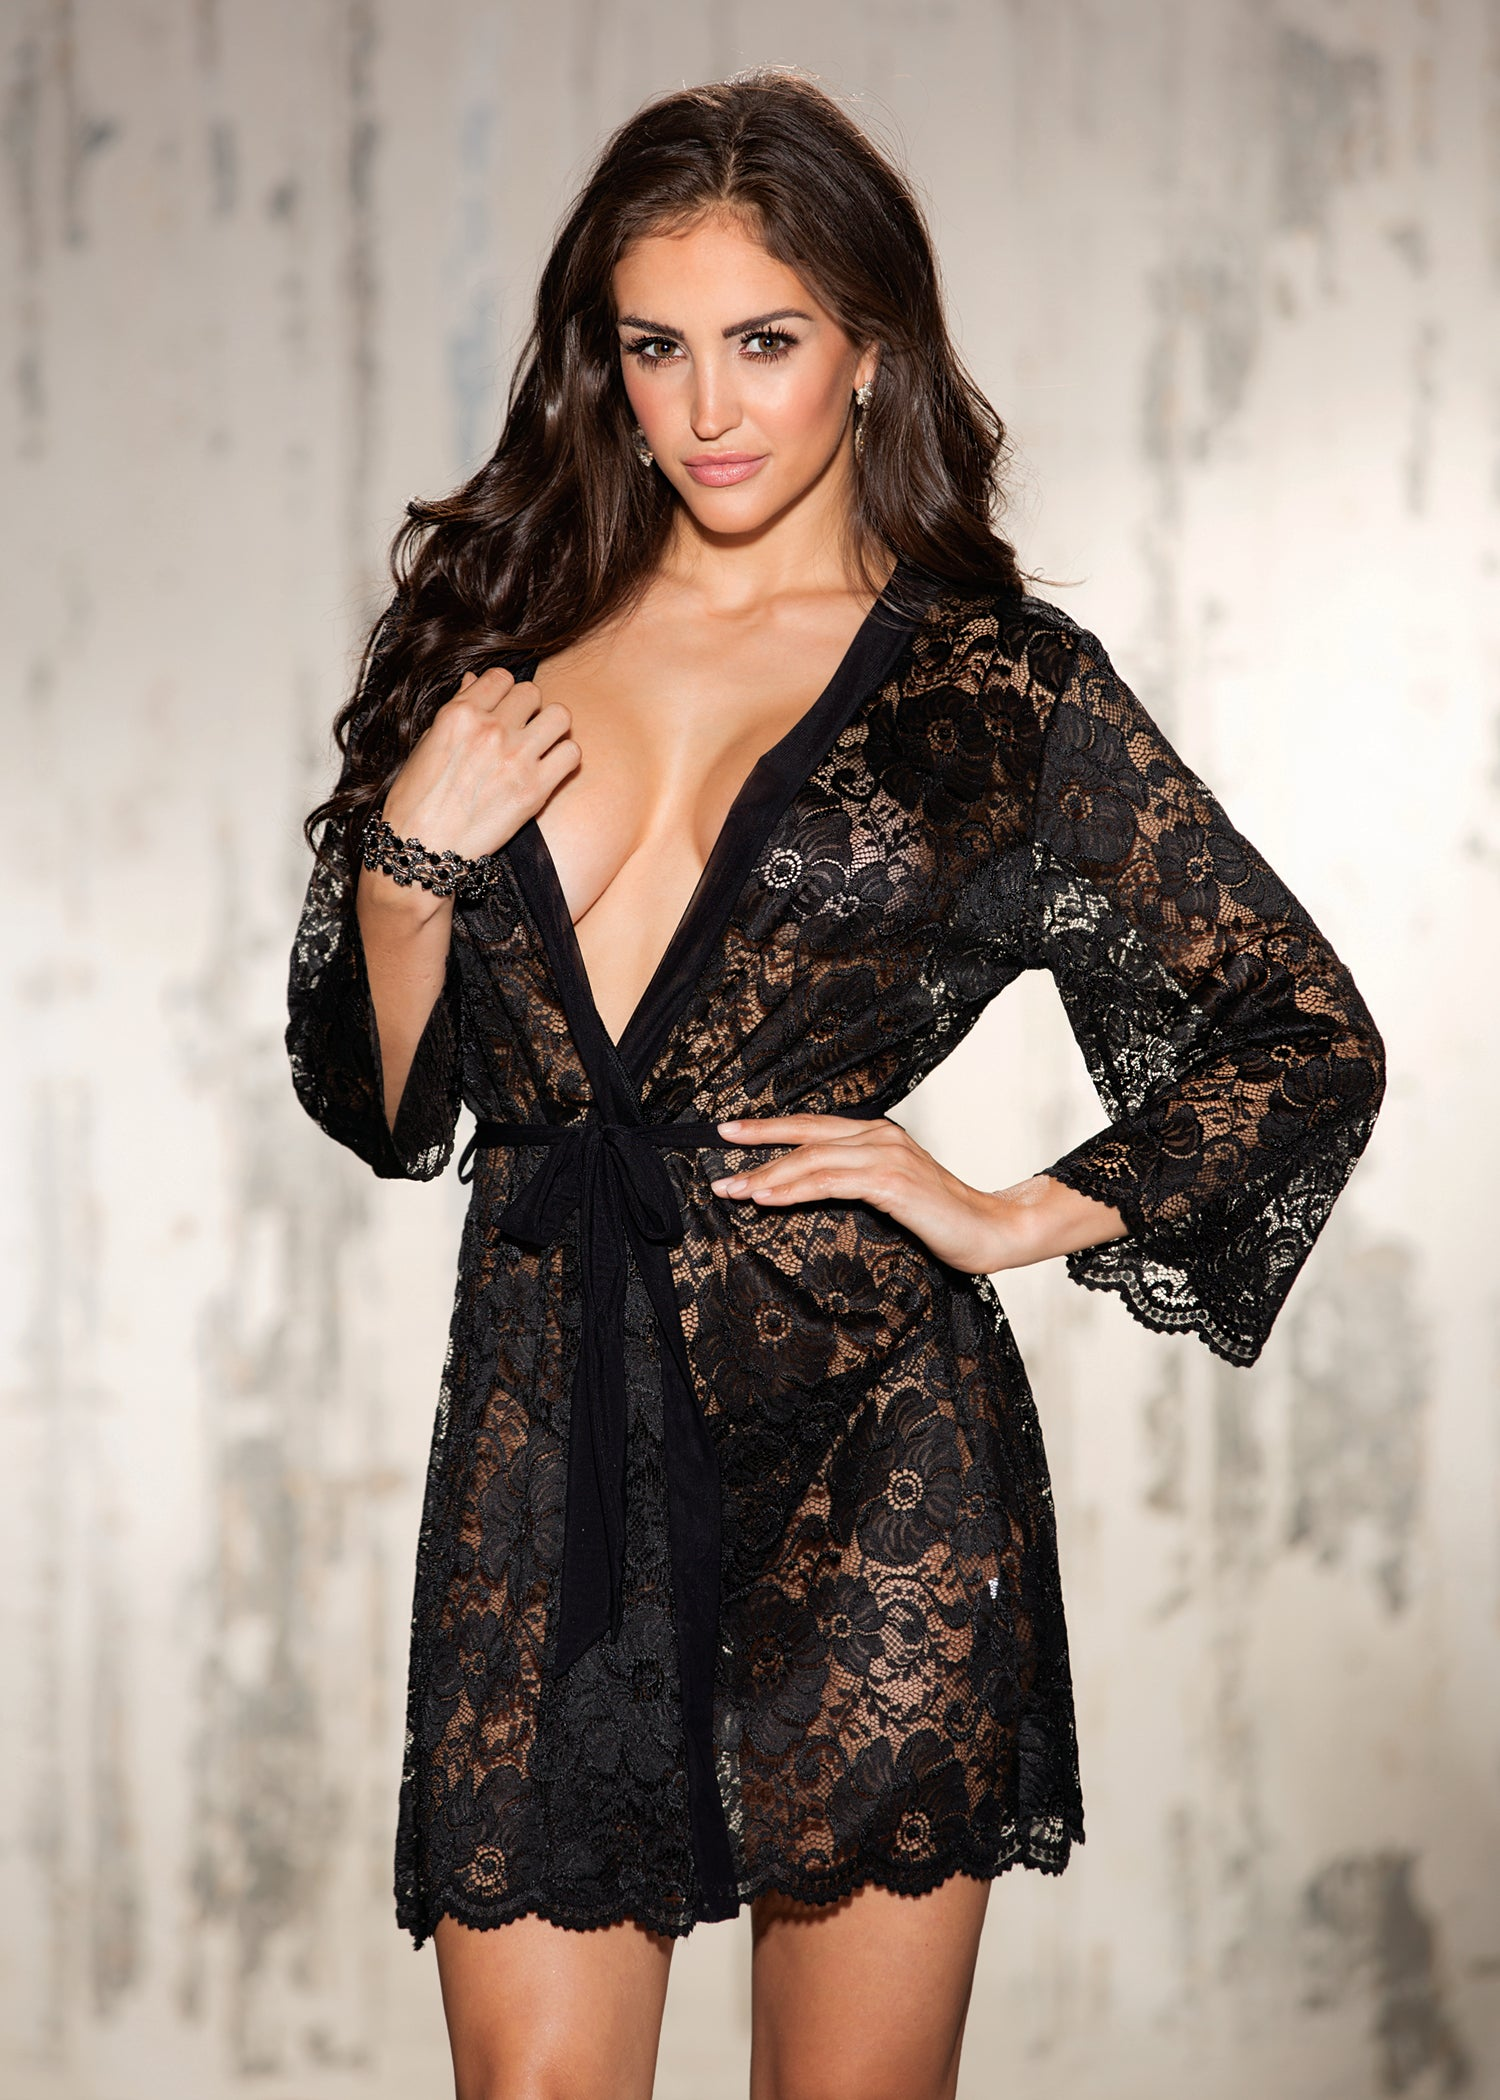 Beautiful stretch lace robe trimmed with mesh band and tie belt. Comes with stretch lace g-string.